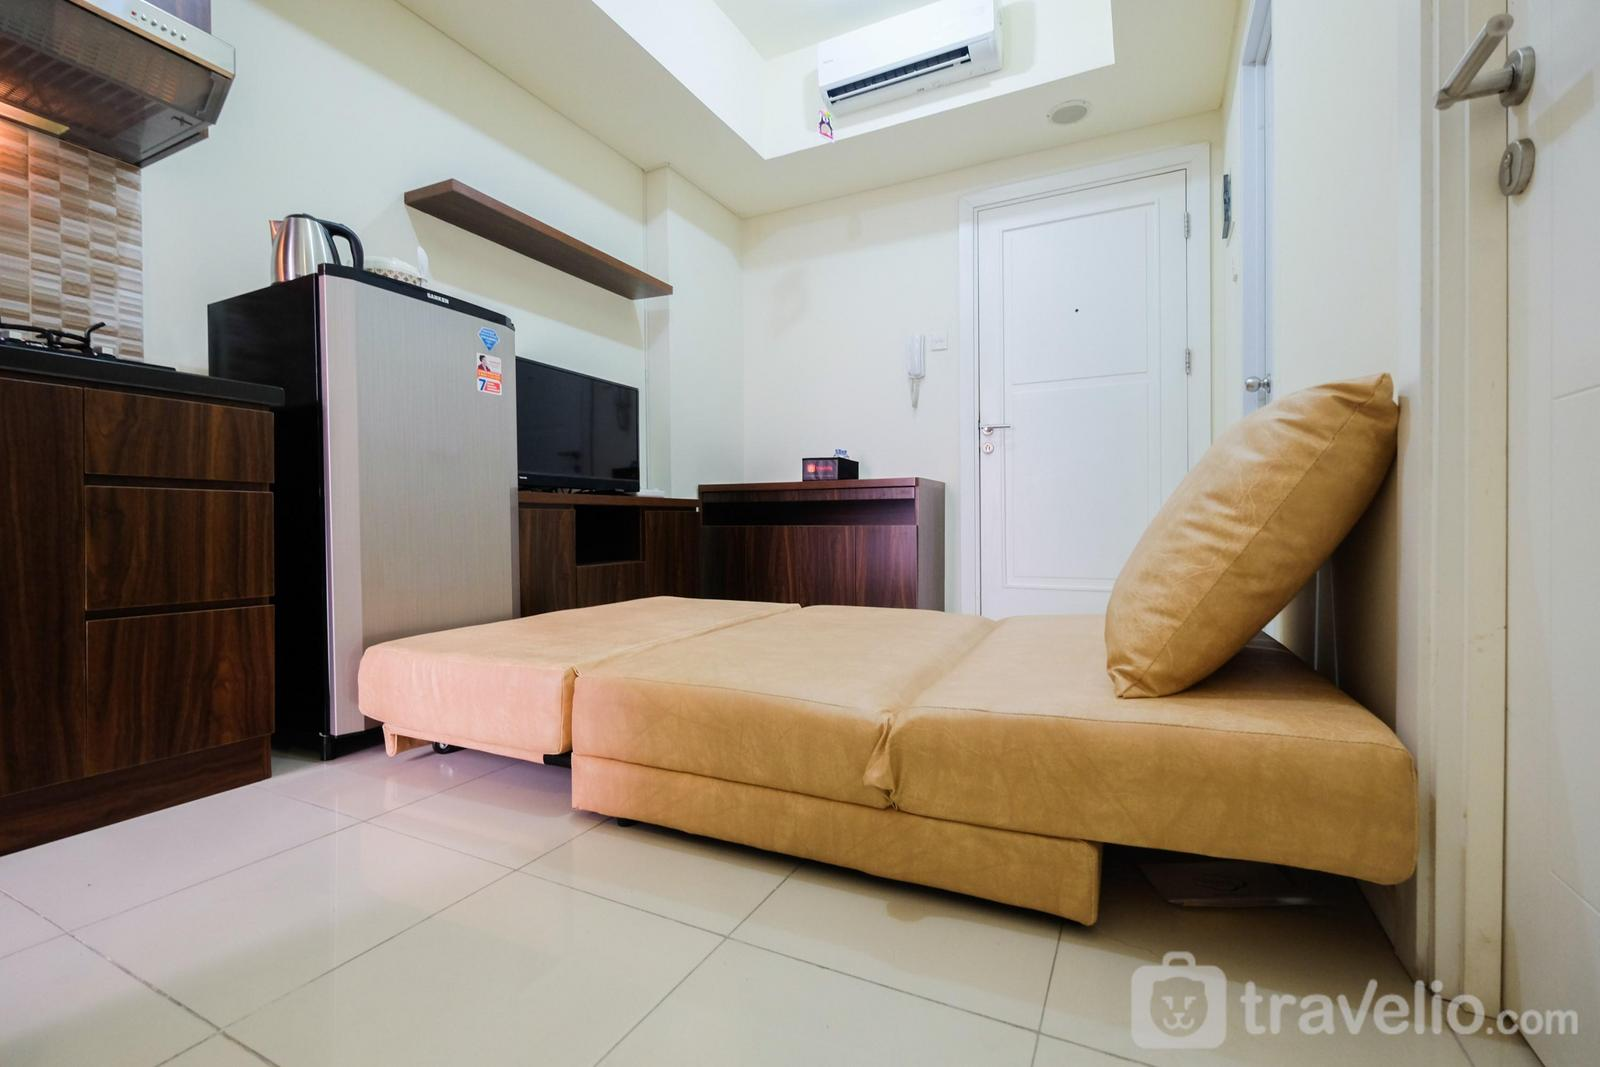 Greenlake Sunter - Comfy 2BR at Green Lake Sunter Apartment By Travelio